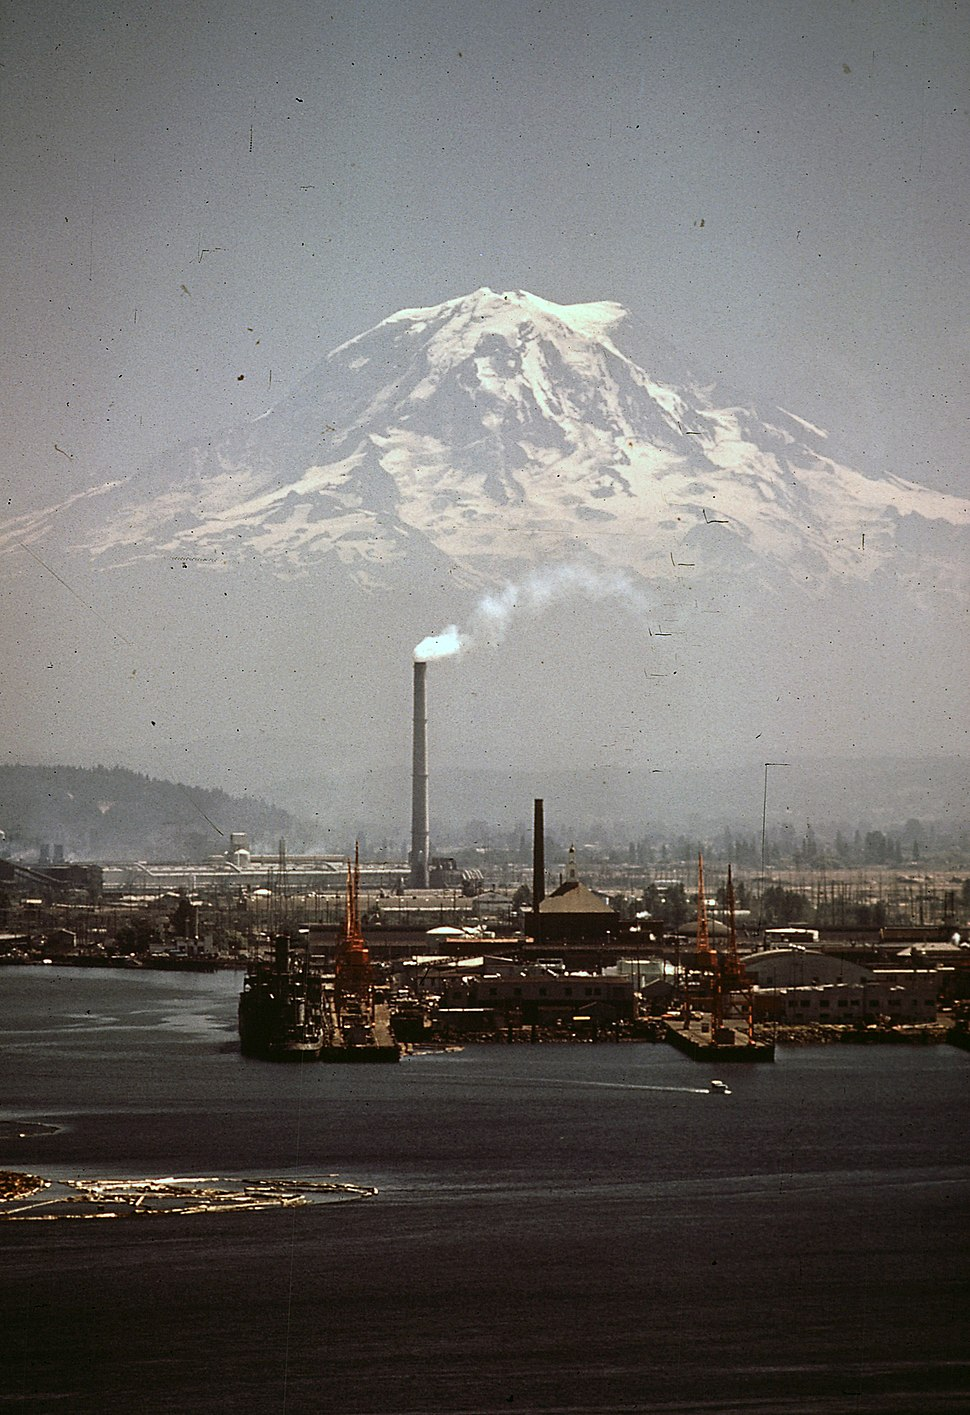 MT. RAINIER, WITH PORT OF TACOMA IN FOREGROUND. STACK BELCHING SMOKE MARKS THE KAISER ALUMINUM PLANT - NARA - 545243